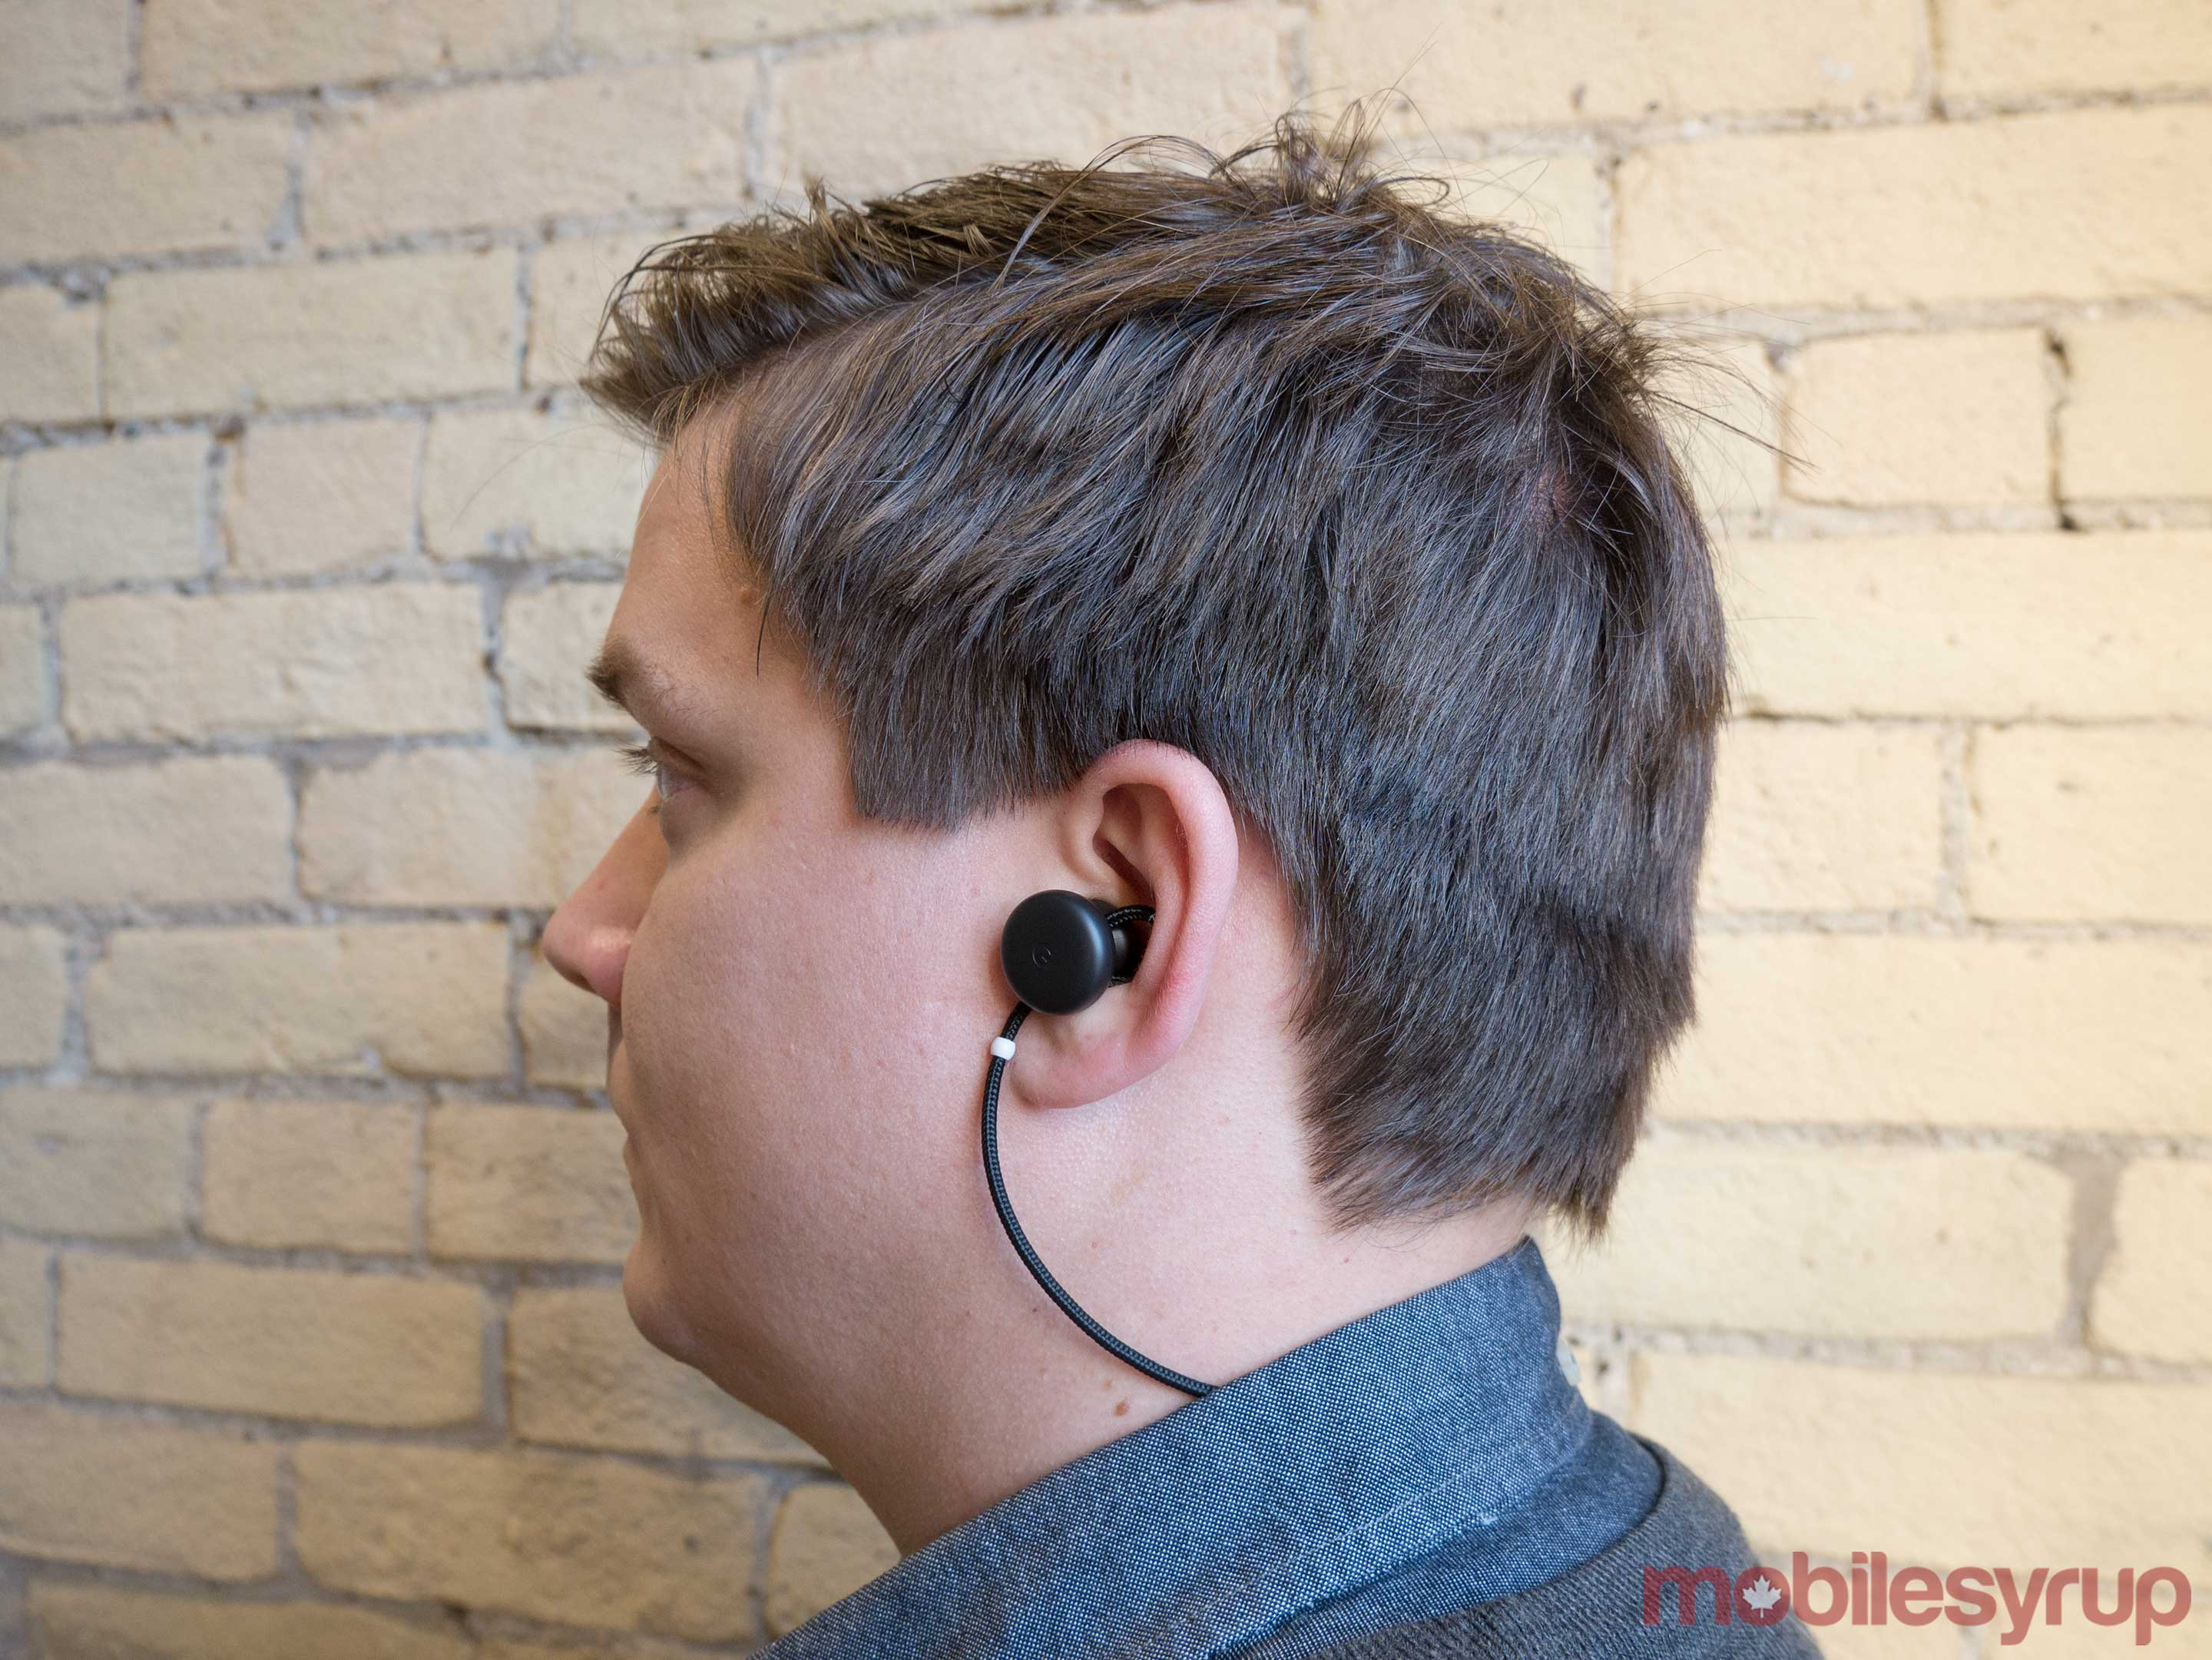 Pixel Buds on ear